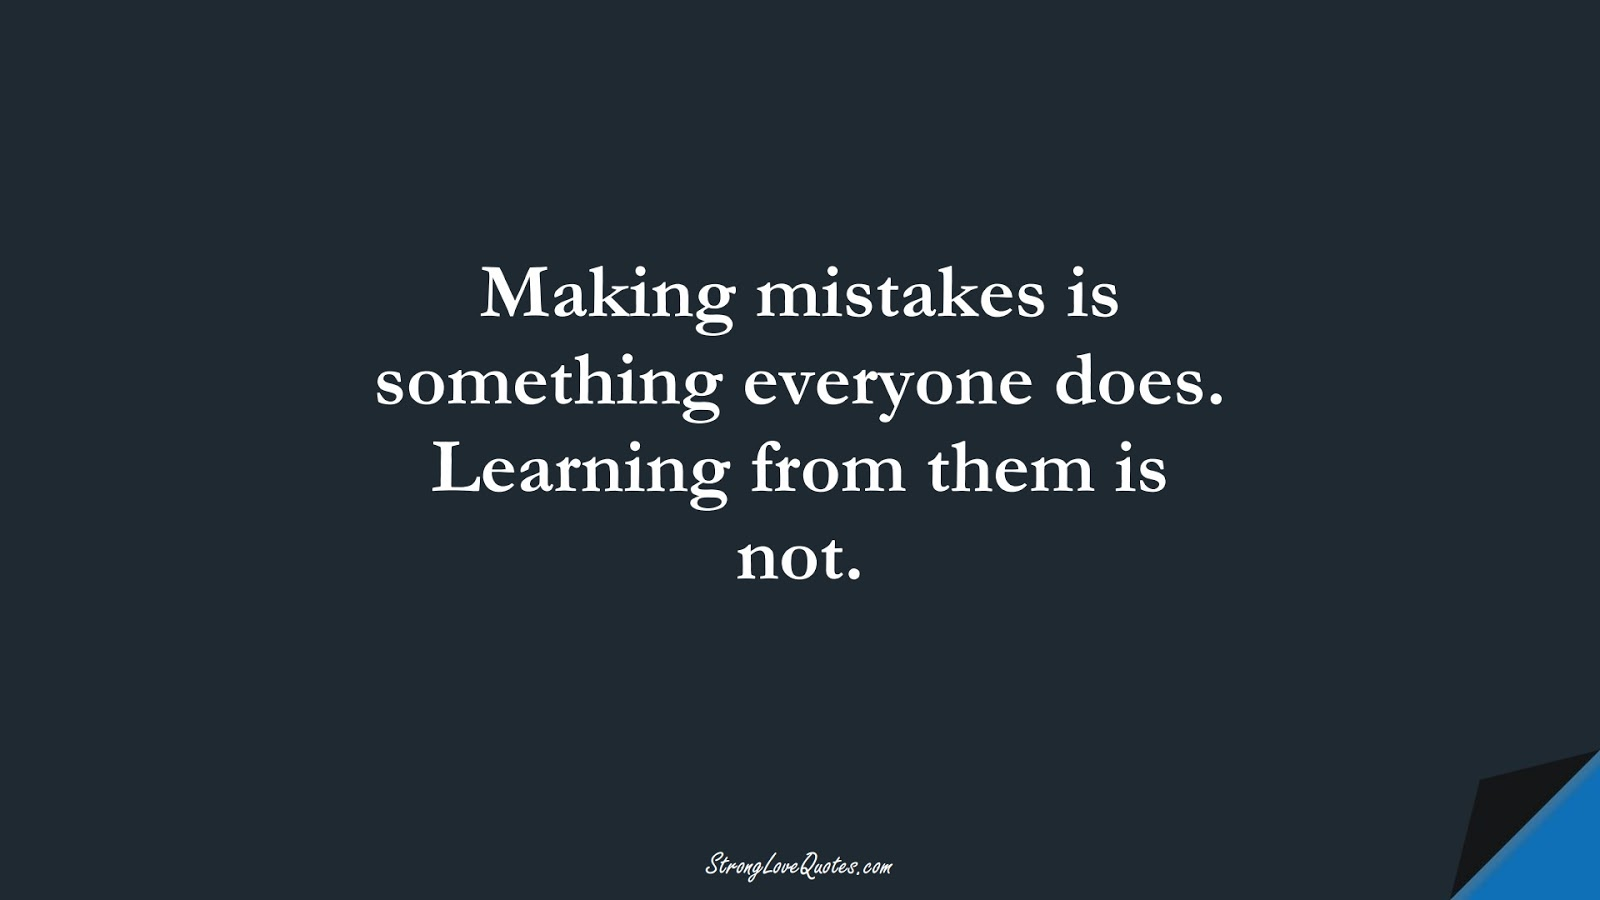 Making mistakes is something everyone does. Learning from them is not.FALSE